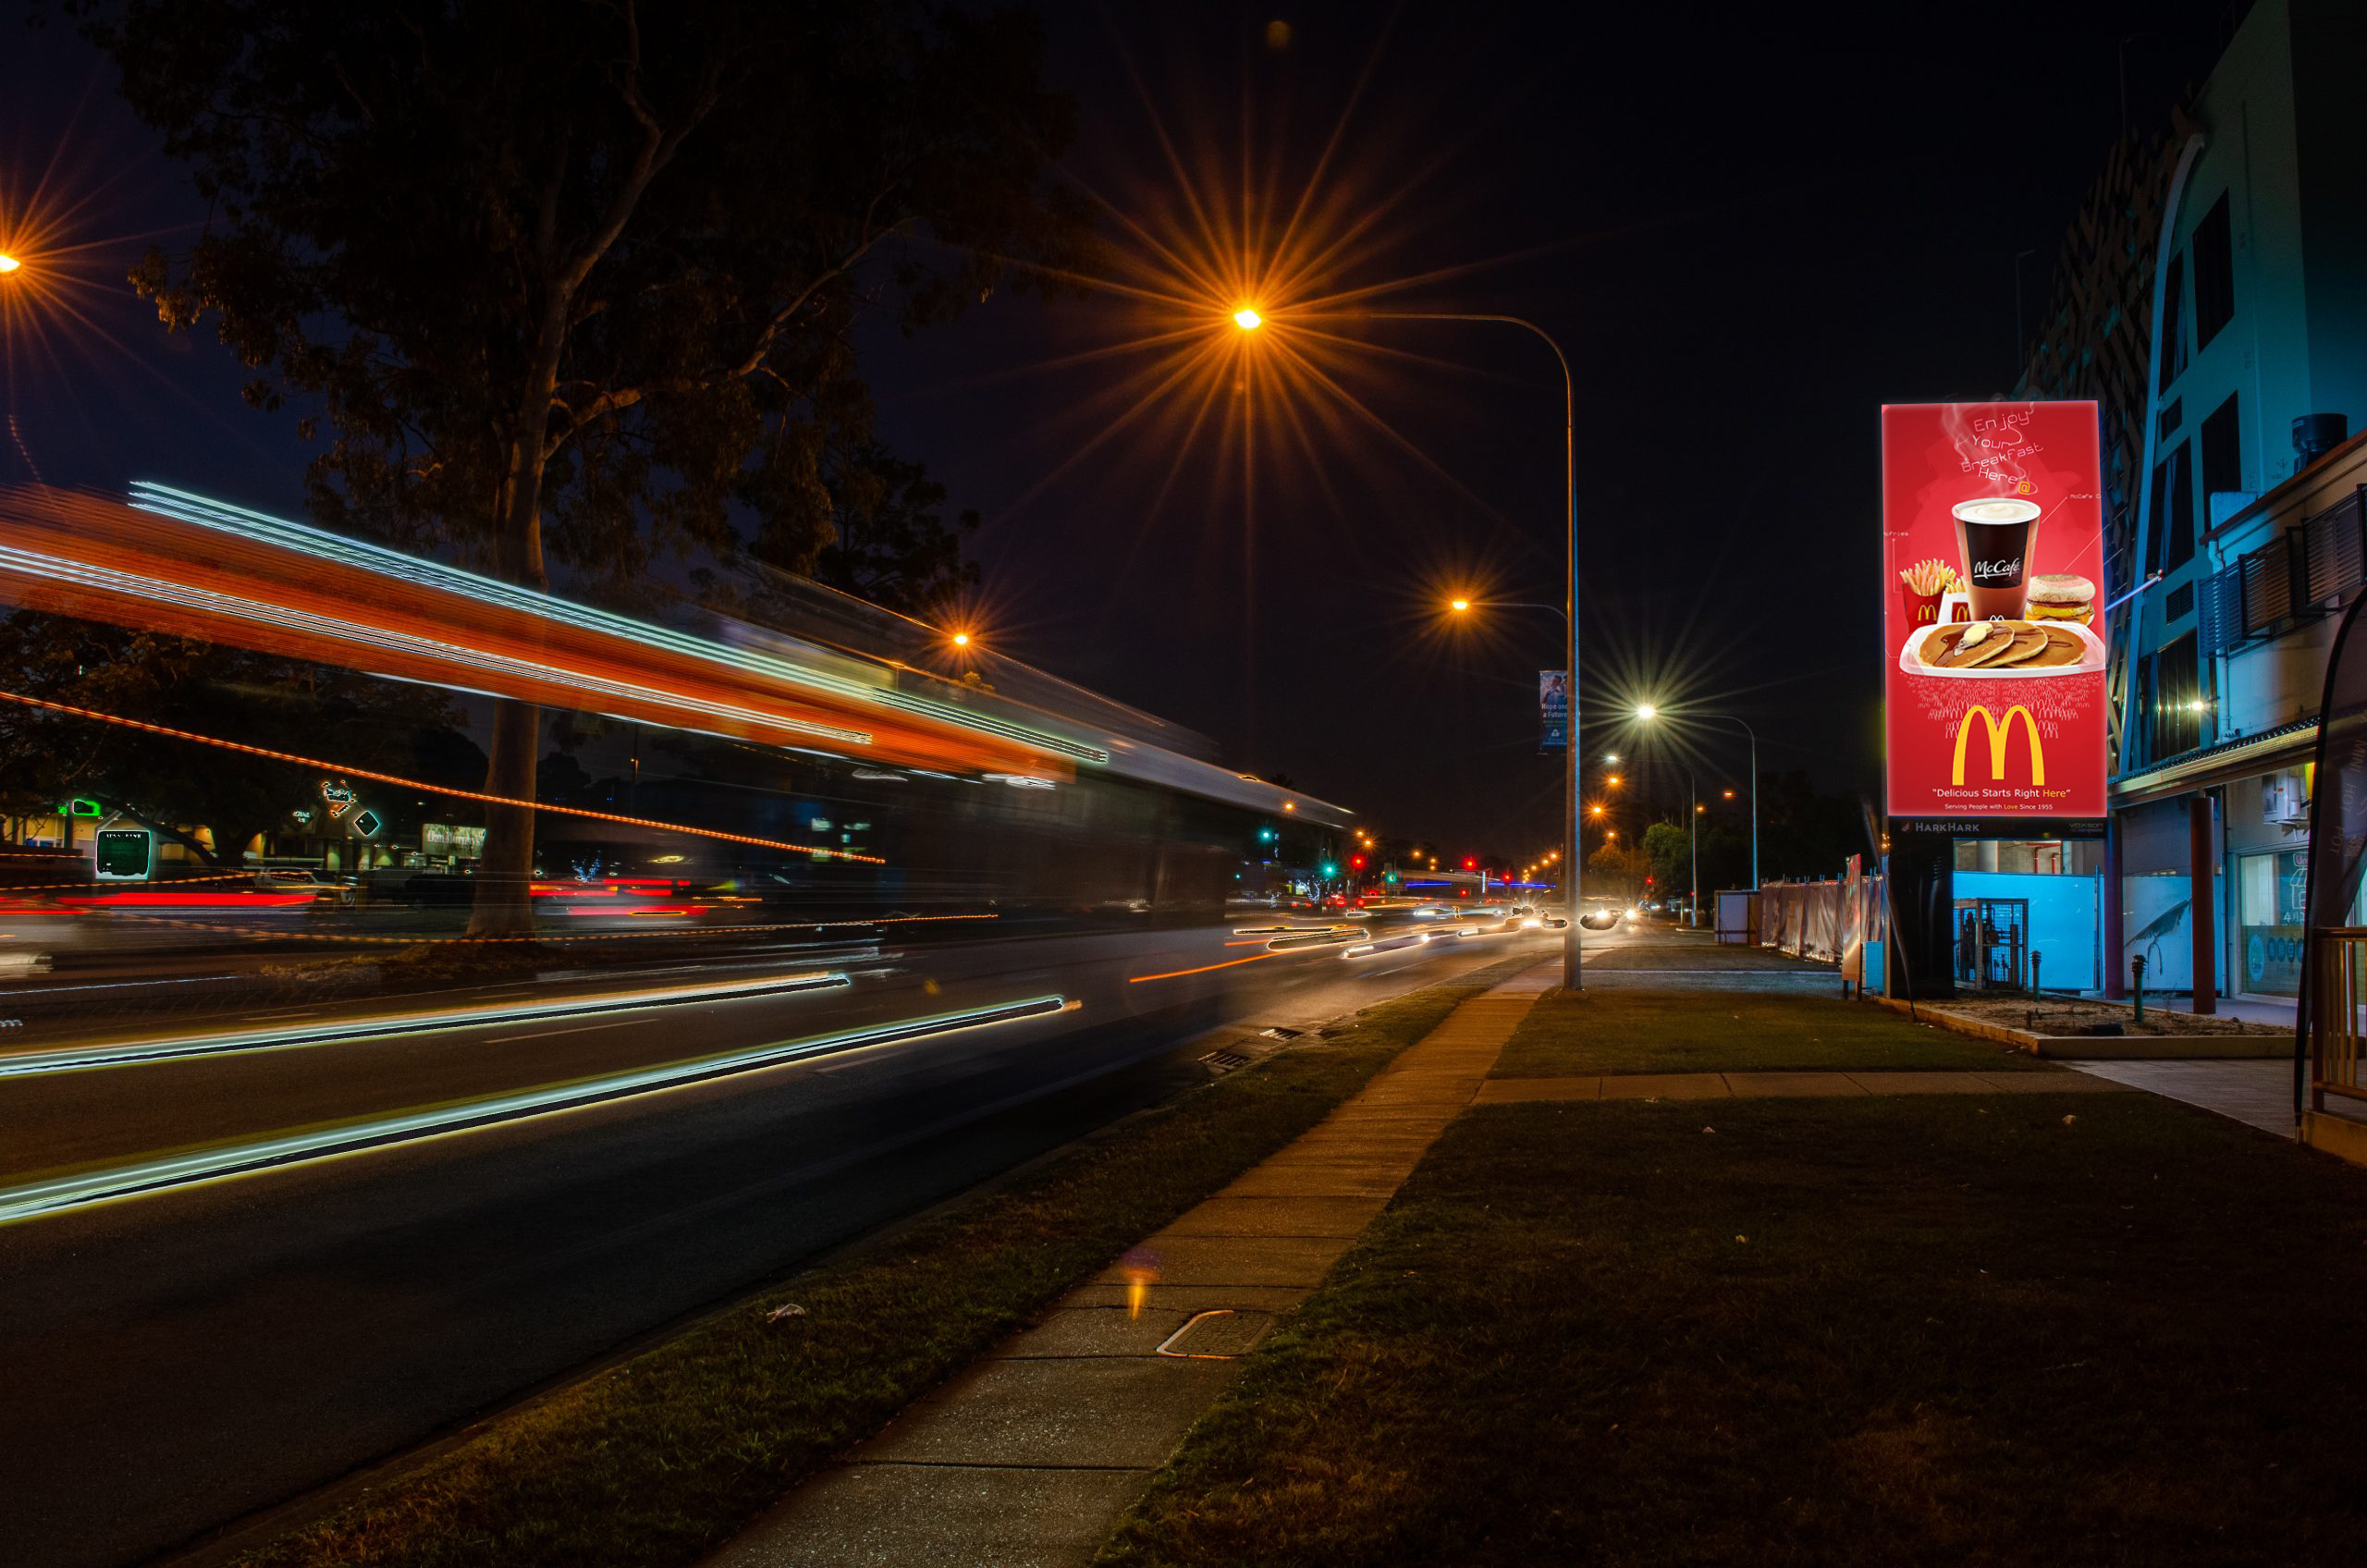 Outdoor LED Signs Voxson 317 Mains Rd Sunnybank